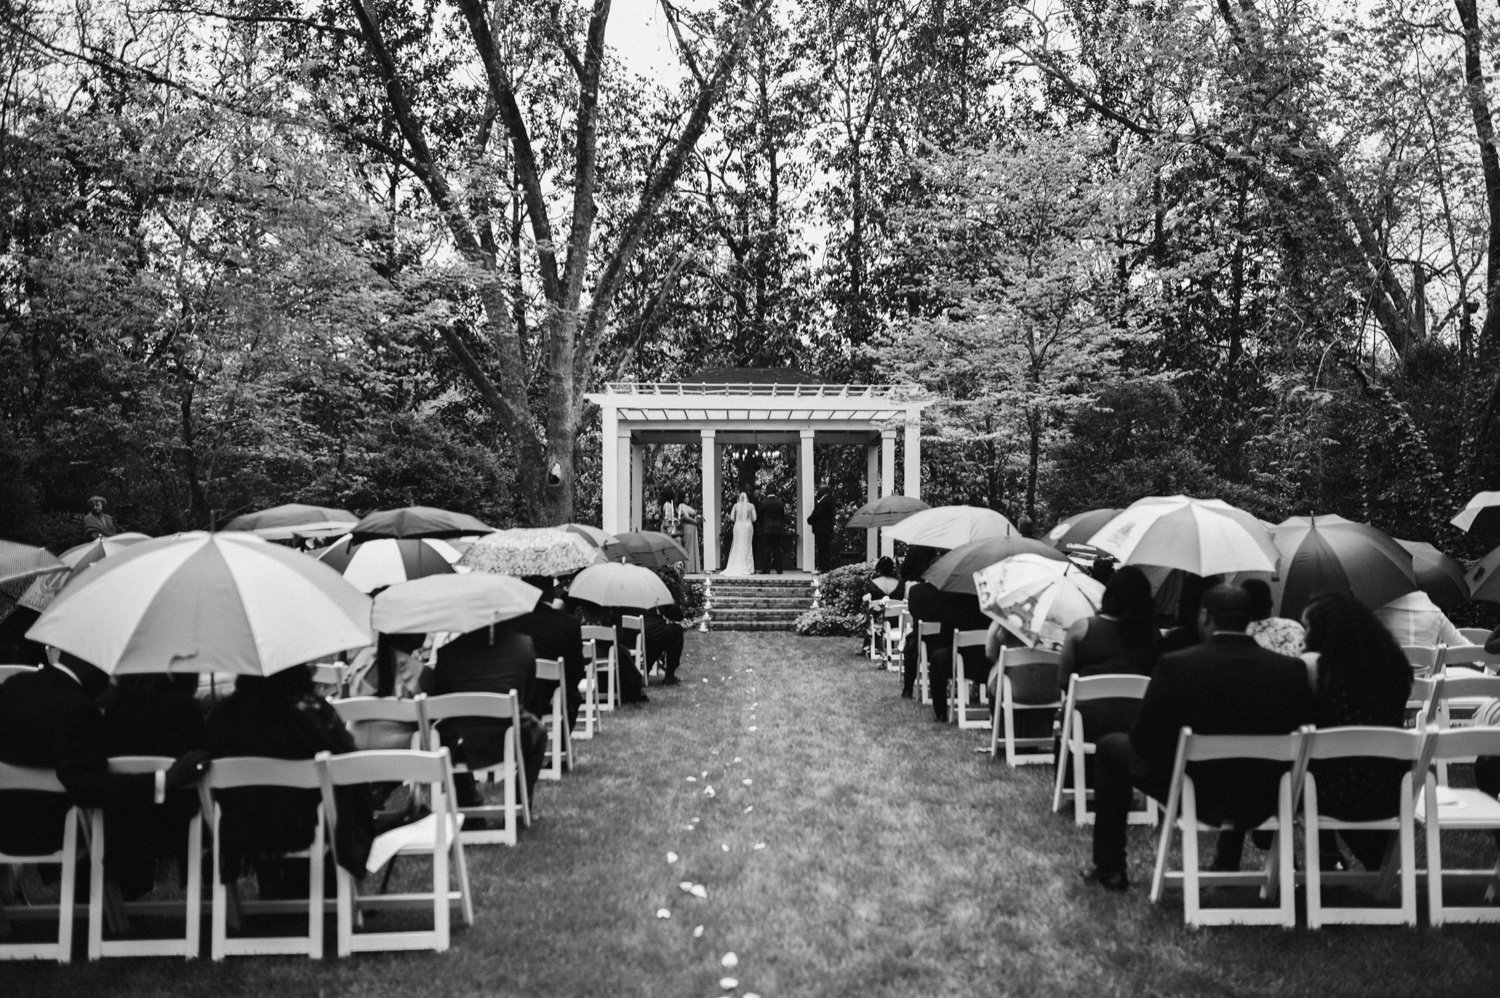 wide shot of the ceremony as guests use umbrellas for the light rain